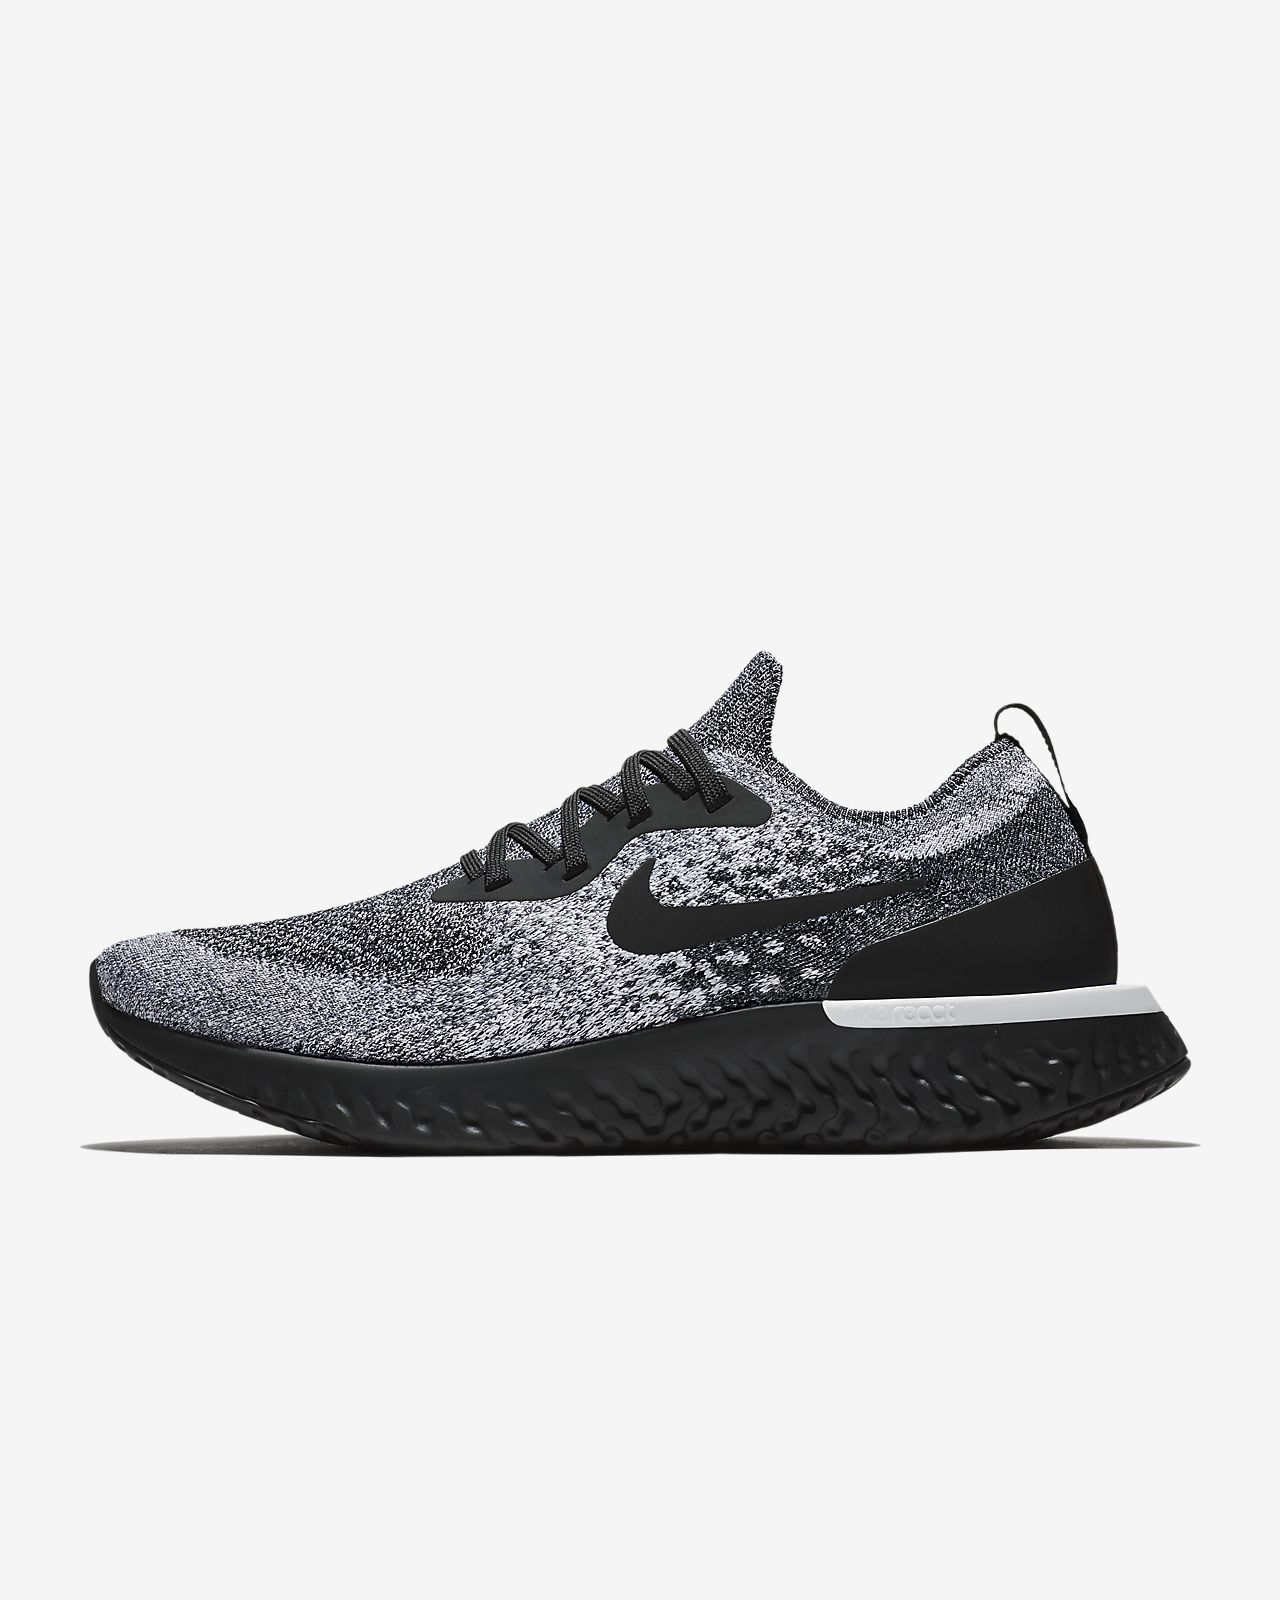 0975486df45f Nike Epic React Flyknit Men s Running Shoe. Nike.com ID